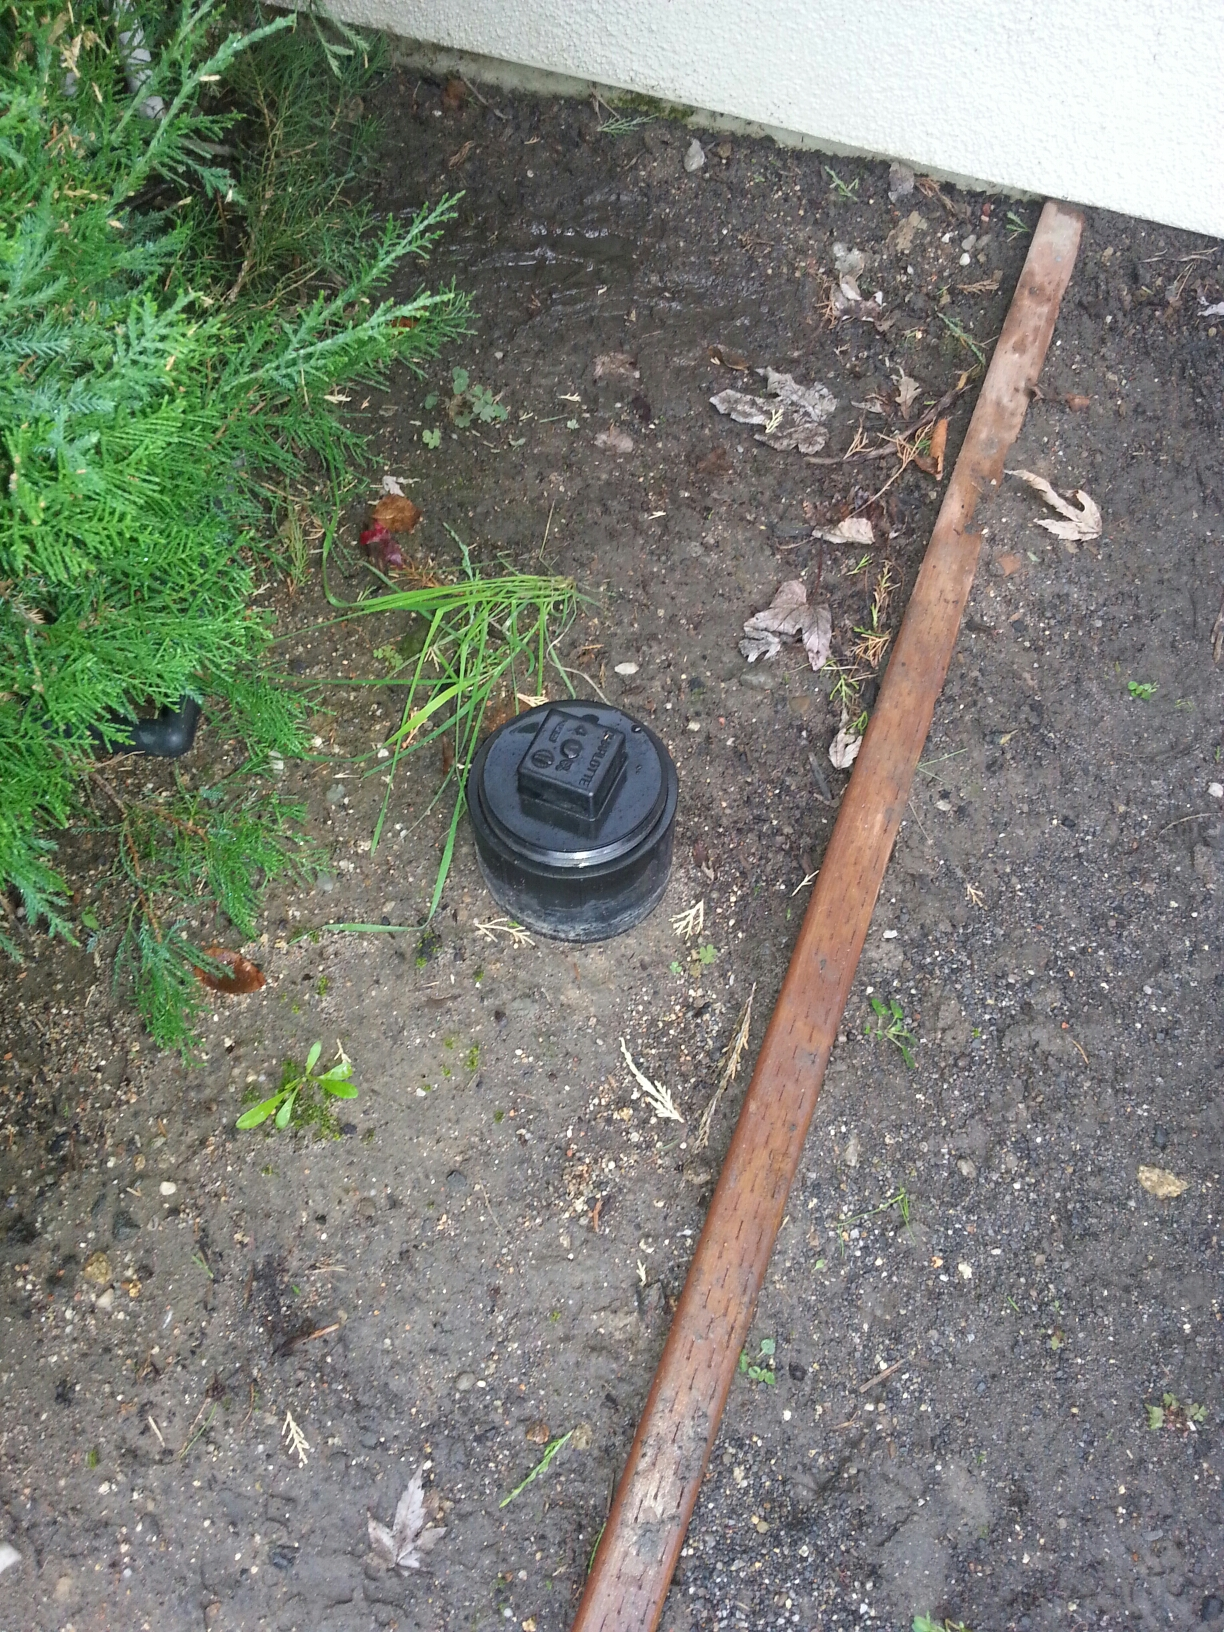 Loomis, CA - Loomis medical group sewer lines needed cleaning. Lines got jetted and decreased in every drain.